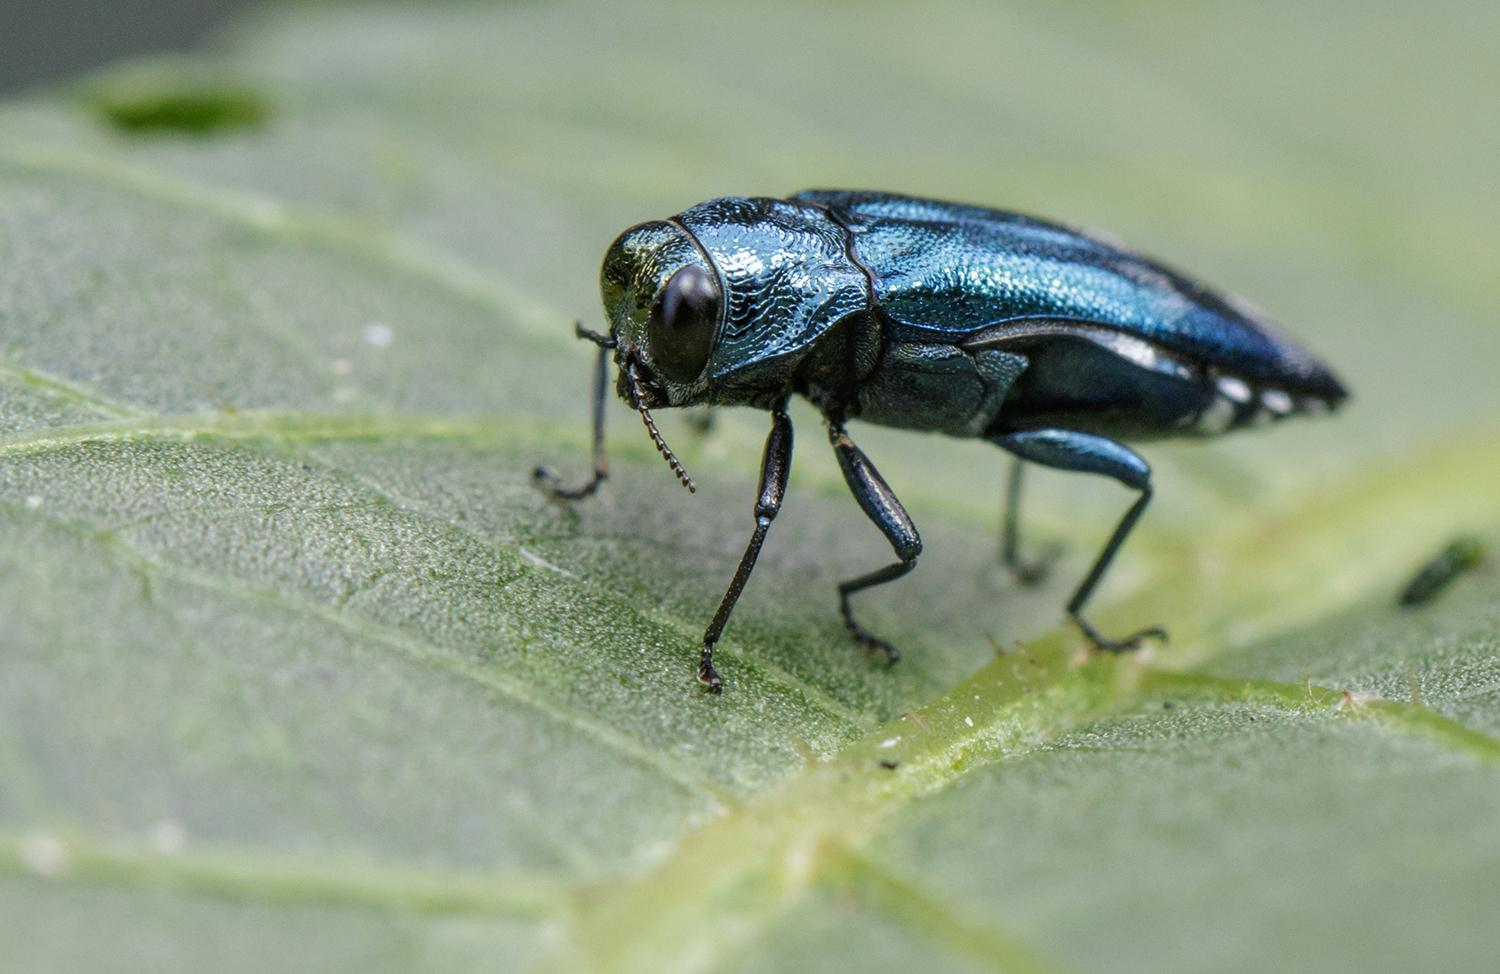 An emerald ash borer resting on a green leaf.